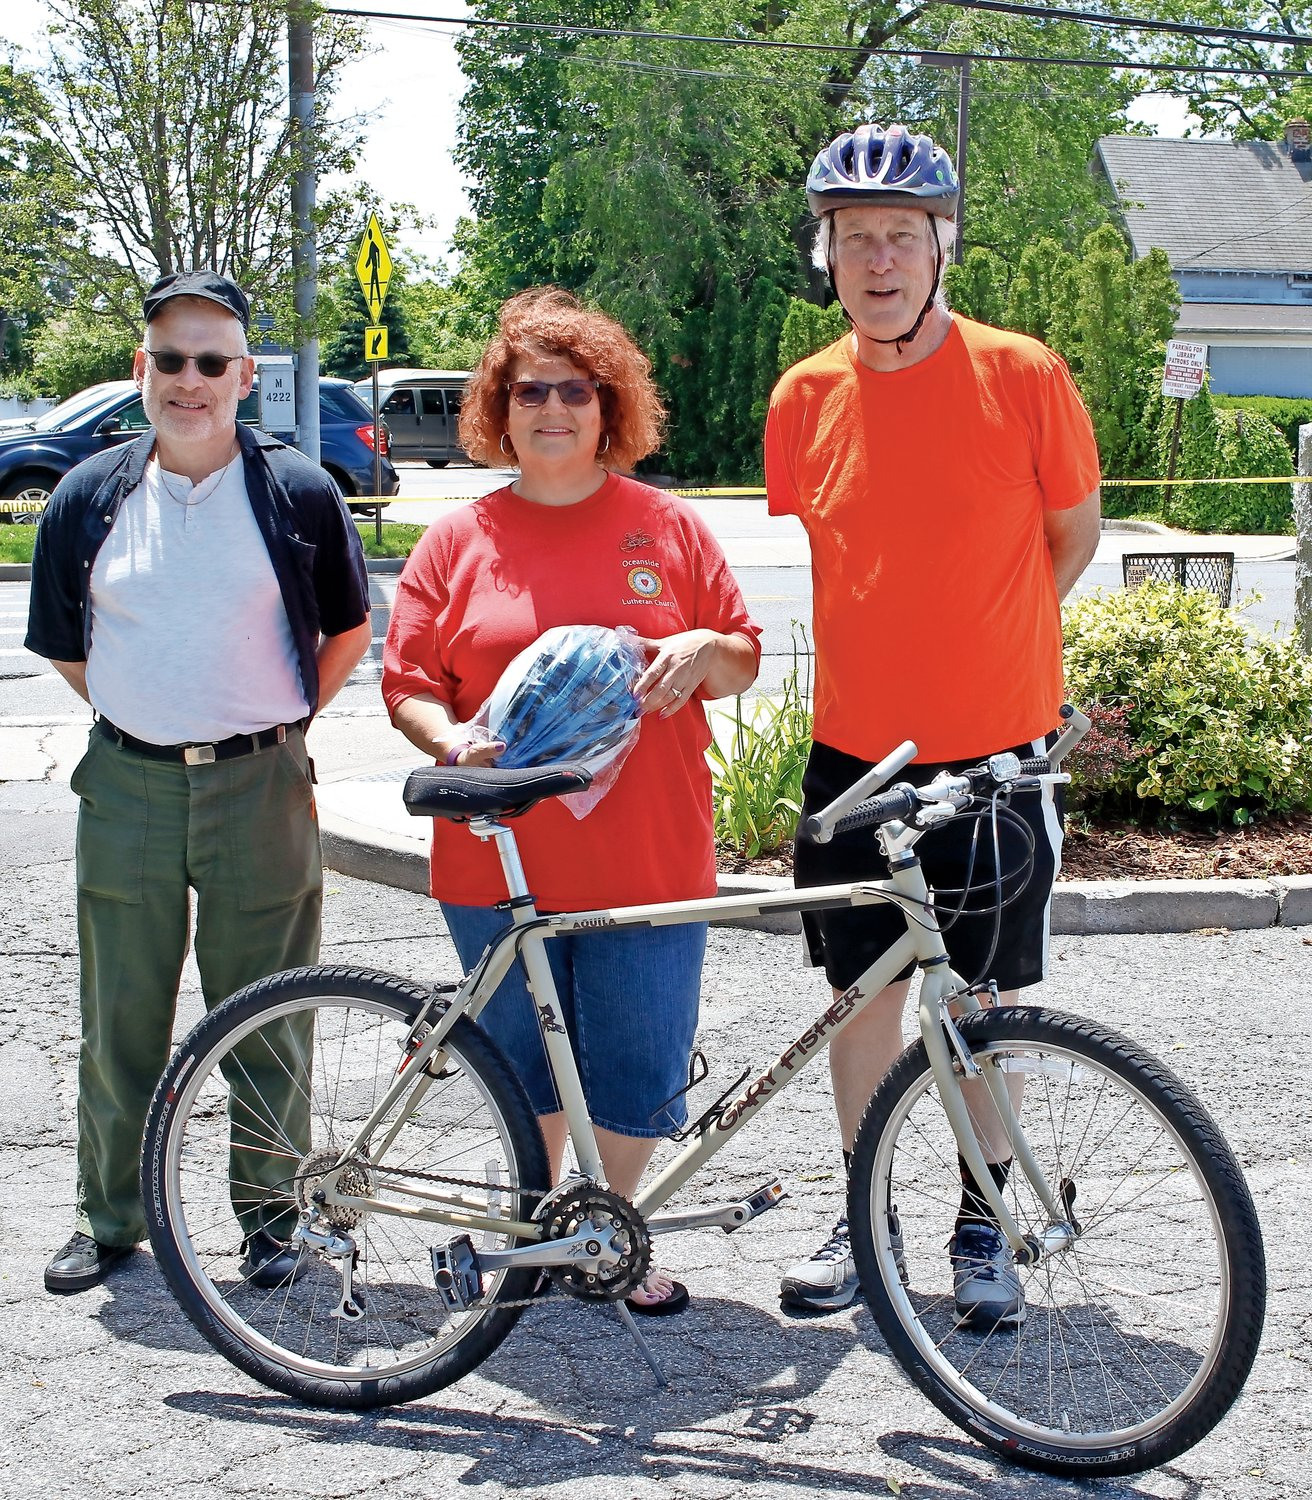 The Oceanside Lutheran Church partnered with the New York Coalition of Transportation Safety to hold a bike blessing and safety rodeo. Lowell Wolf, NYCTS, Debbie Chapman, Church Council President and Mark Hoffacker NYCTS helped to show children the proper safety requirements for bikes.